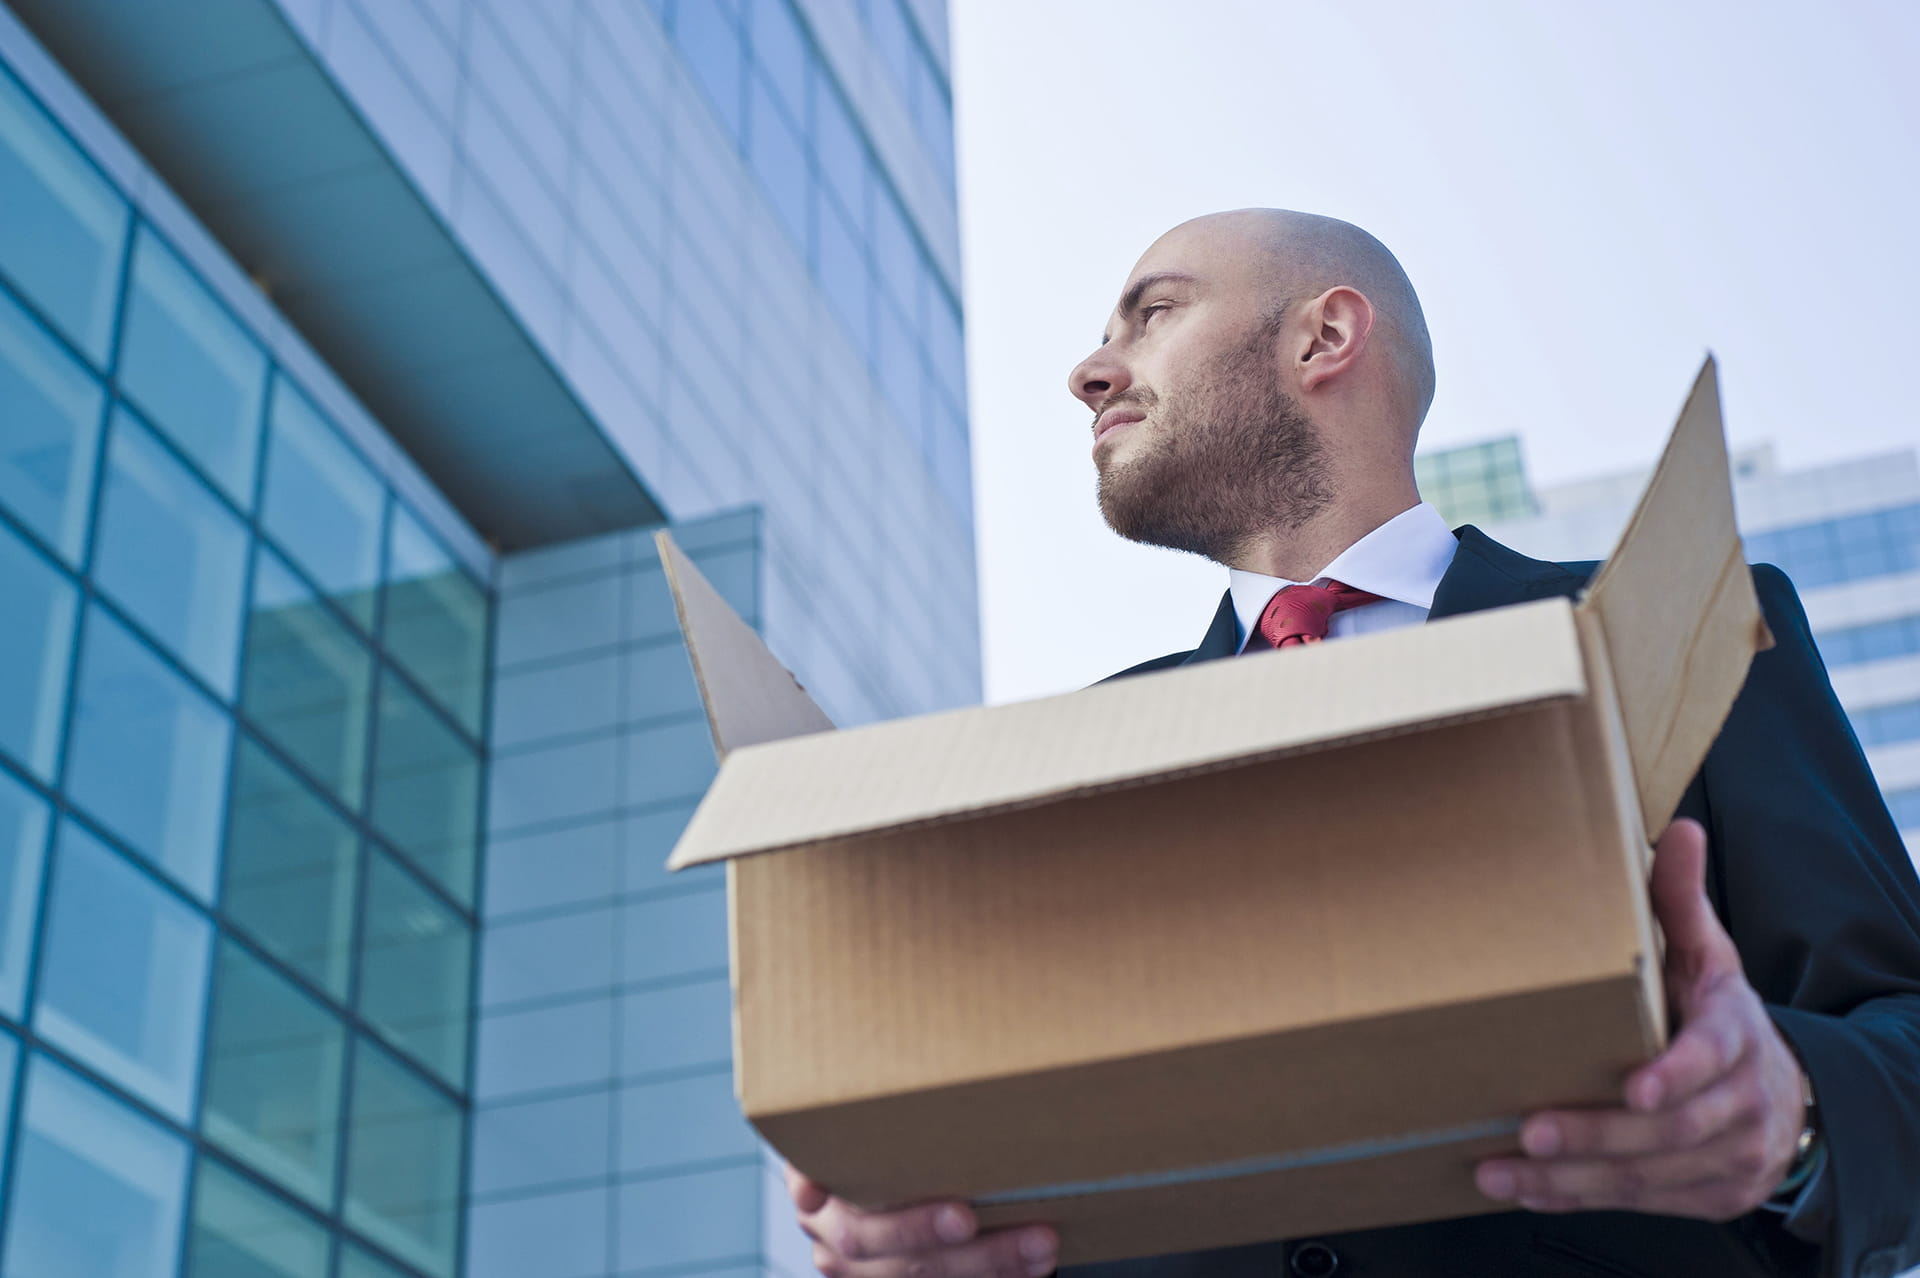 Young Businessman Holding A Cardboard Box Against Modern Skyscrapers